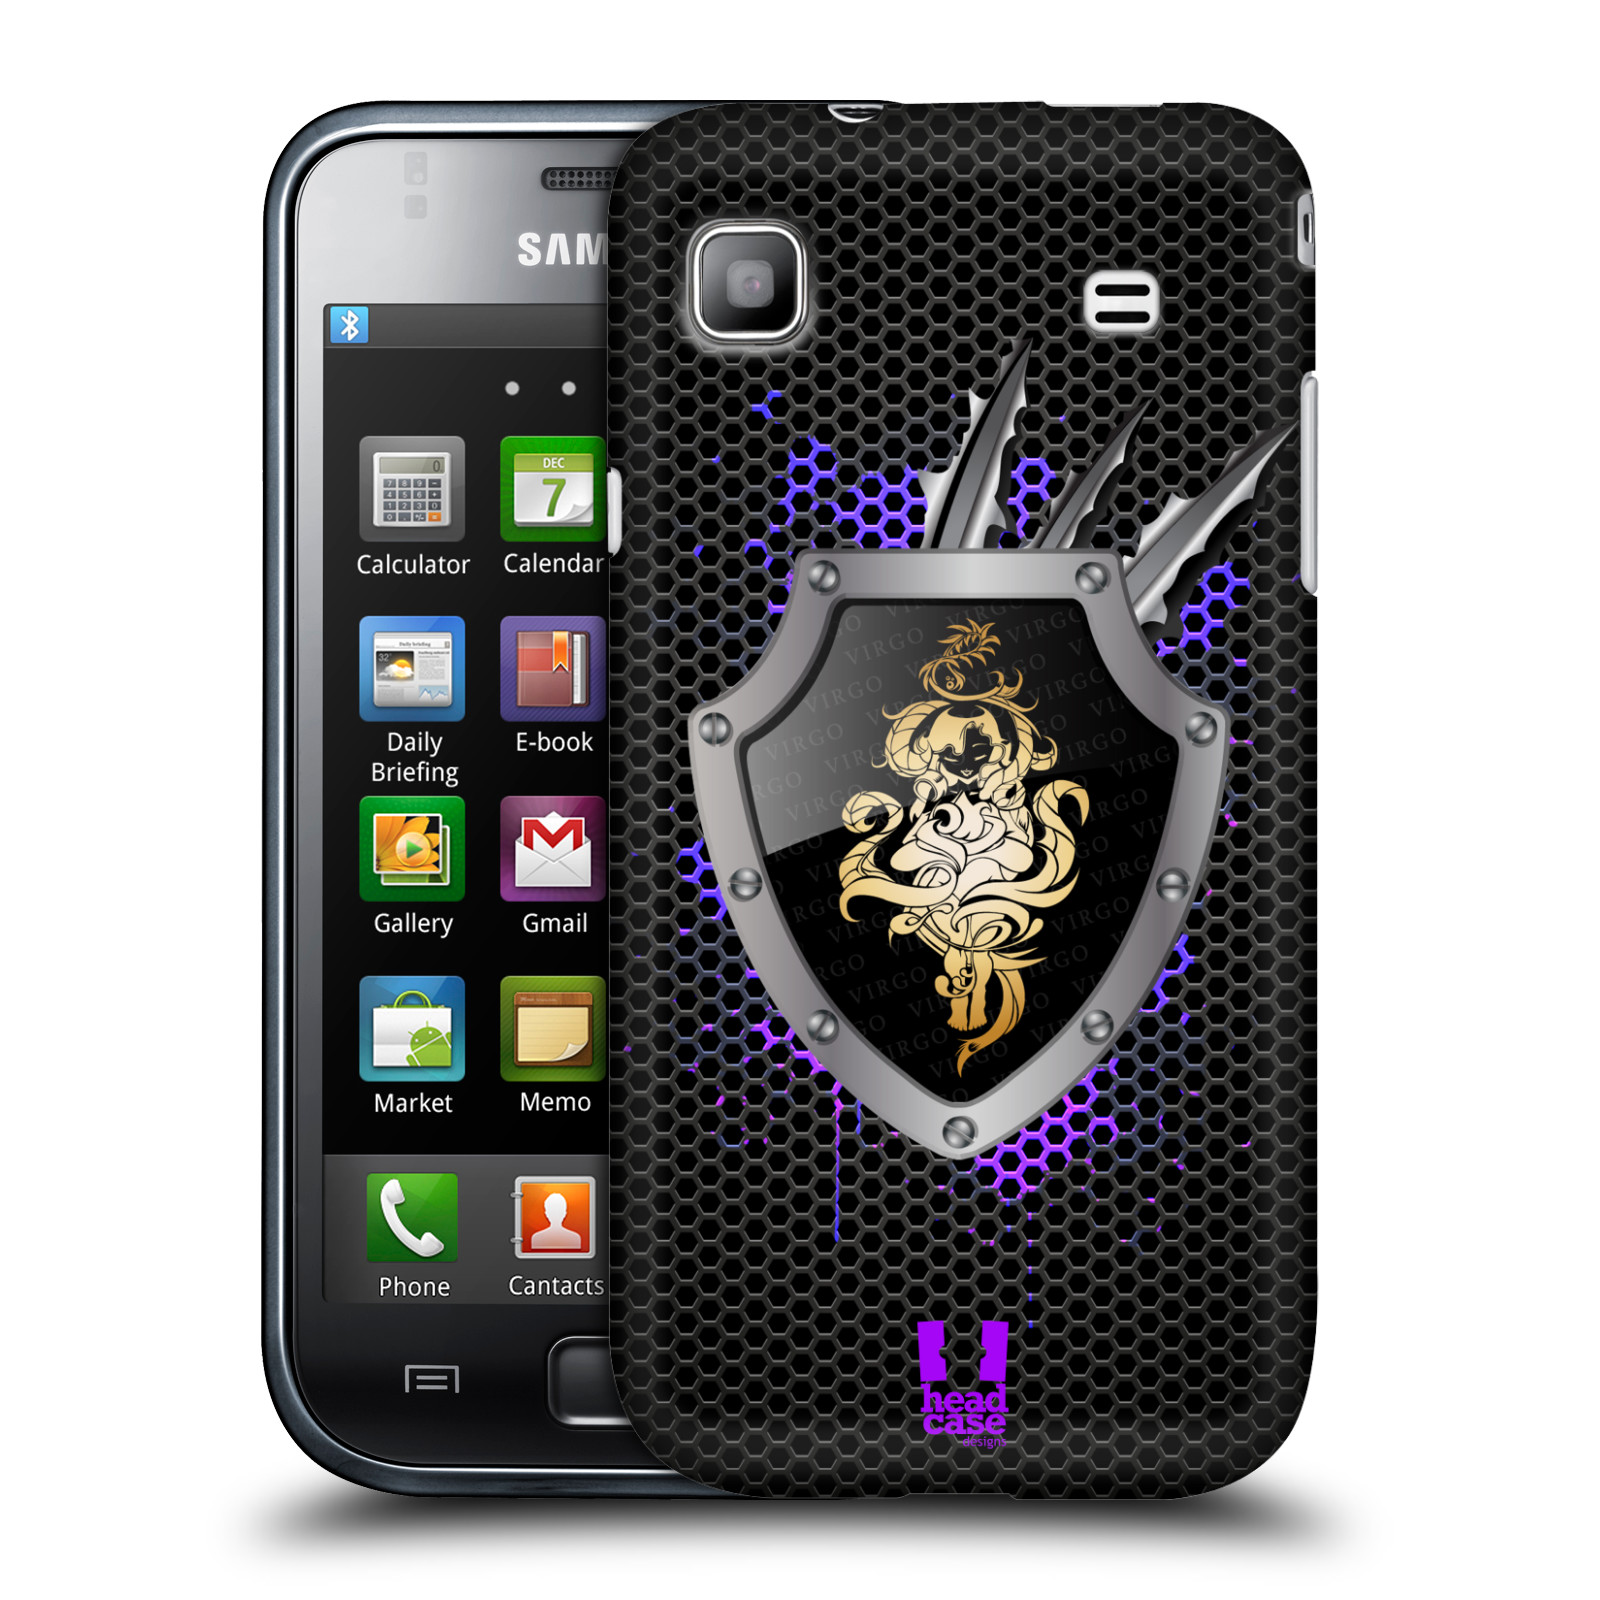 HEAD CASE DESIGNS METAL ZODIAC HARD BACK CASE FOR SAMSUNG GALAXY S I9000